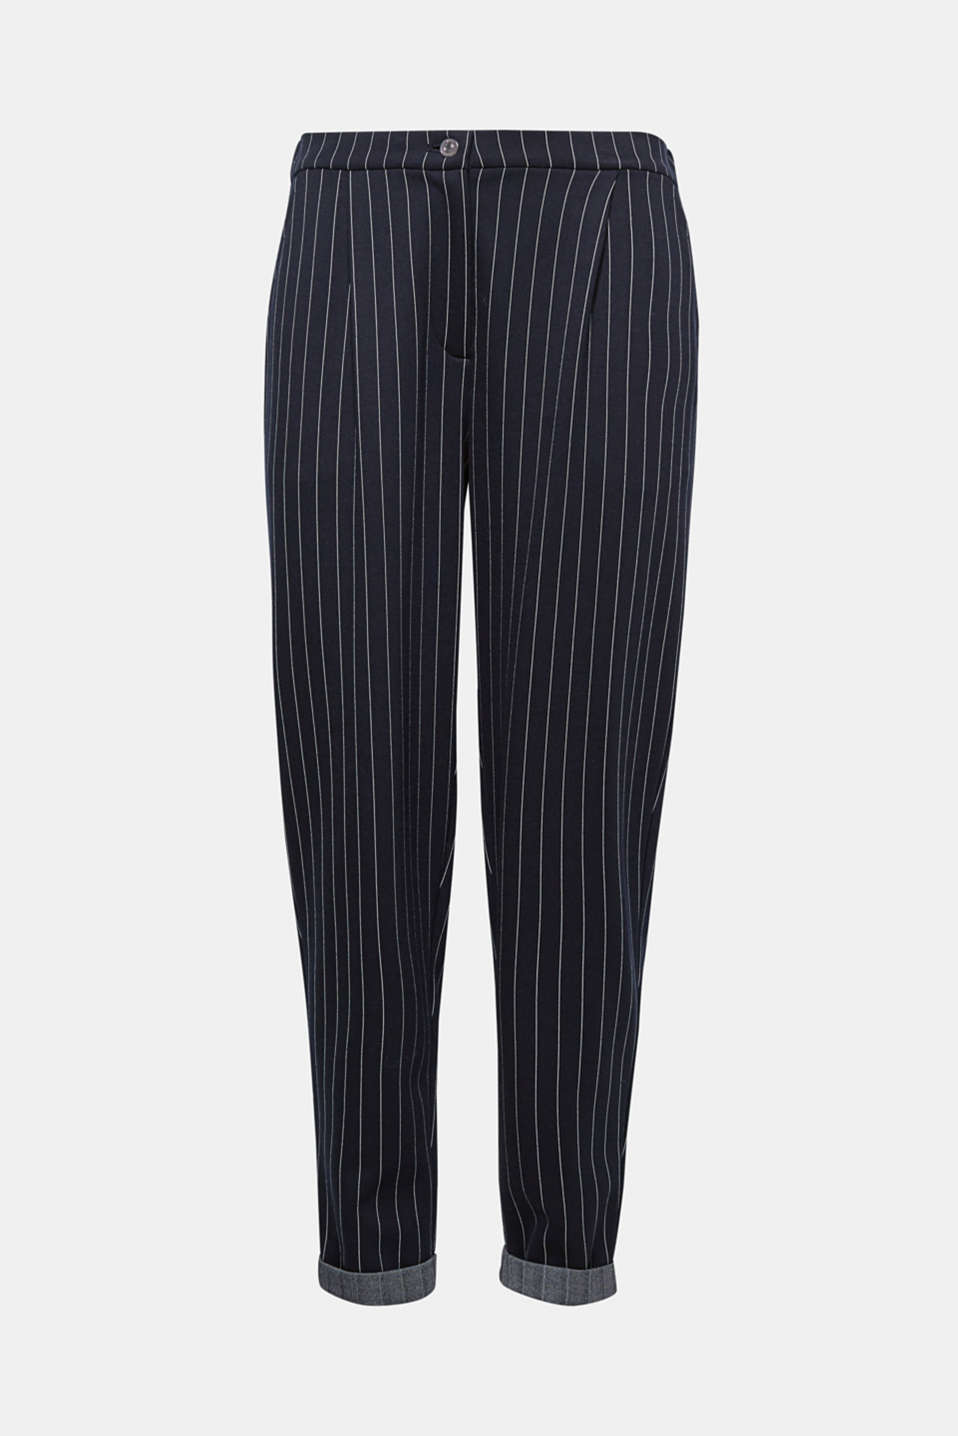 À porter en version classique, tendance ou sportive : le pantalon à fines rayures en molleton super confortable.